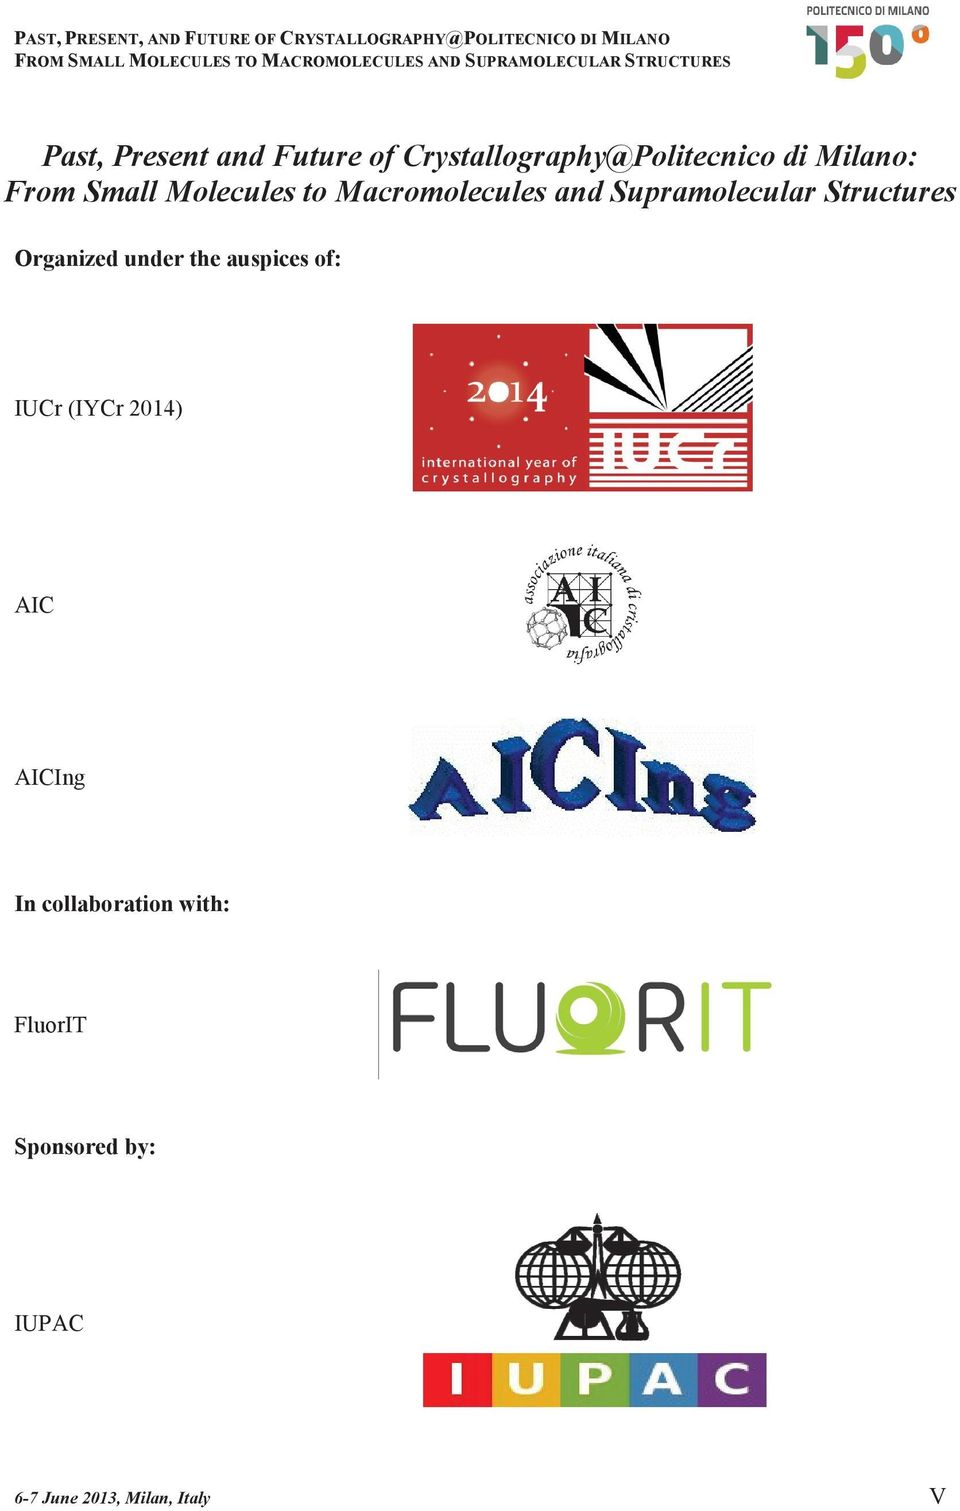 Organized under the auspices of: IUCr (IYCr 2014) AIC AICIng In